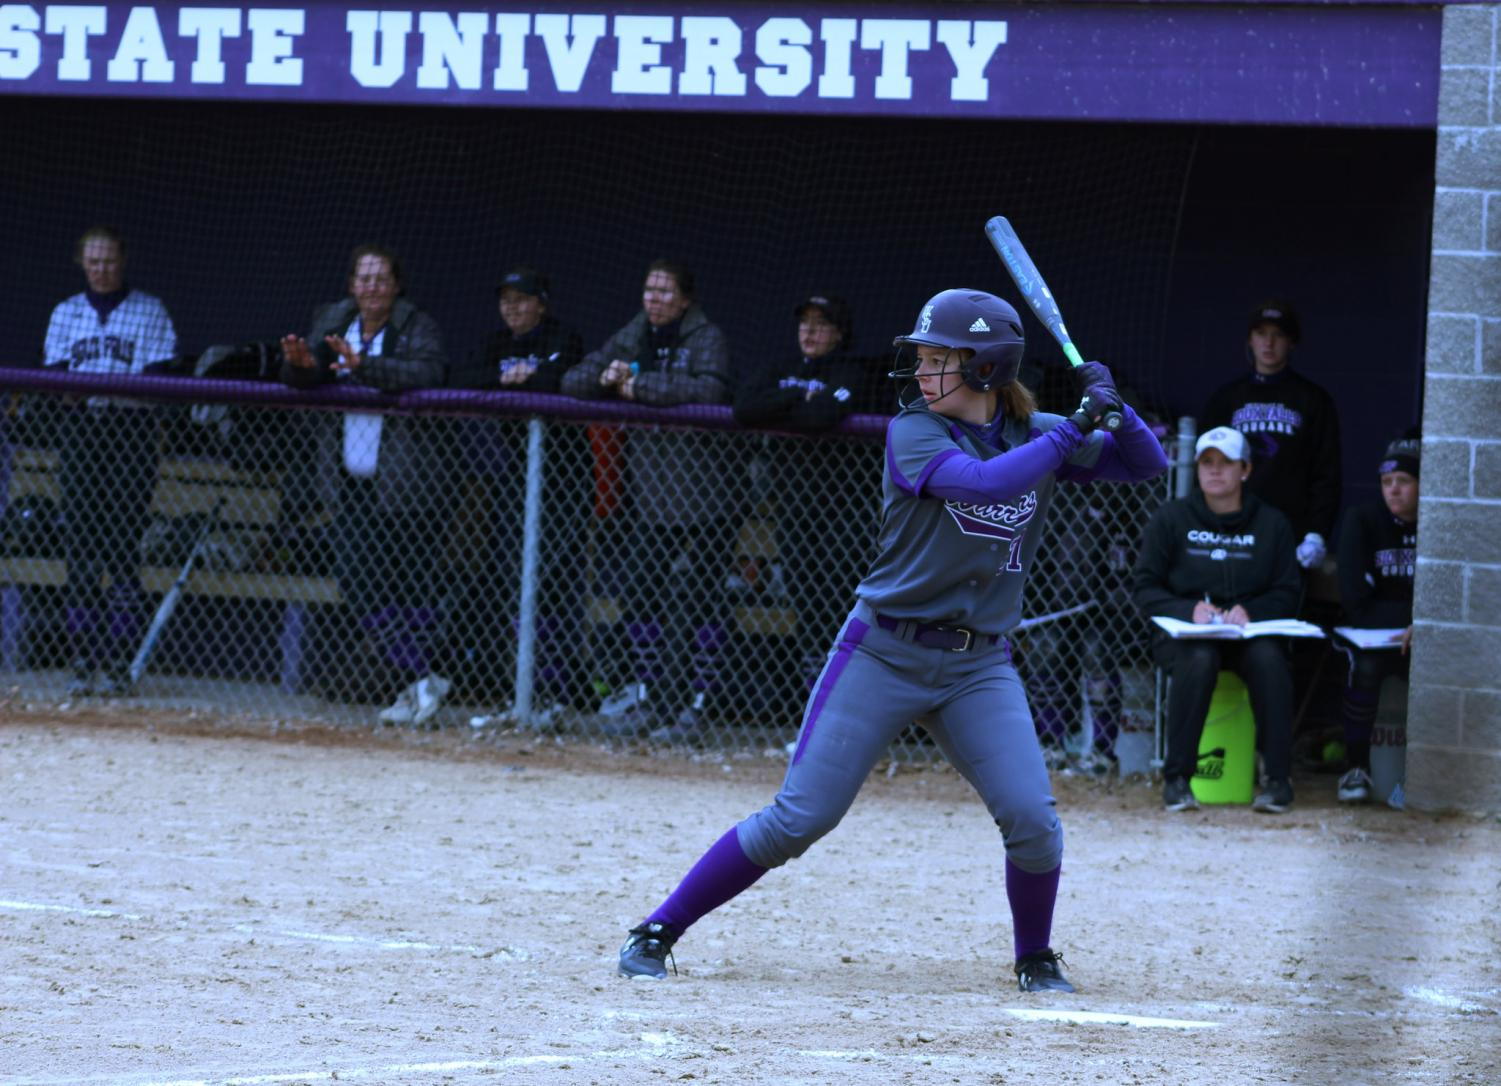 Sophomore Rina Niehoff bats against University of Sioux Falls on Saturday, April 6. The Warriors improved their season record to 27-5 over the weekend.